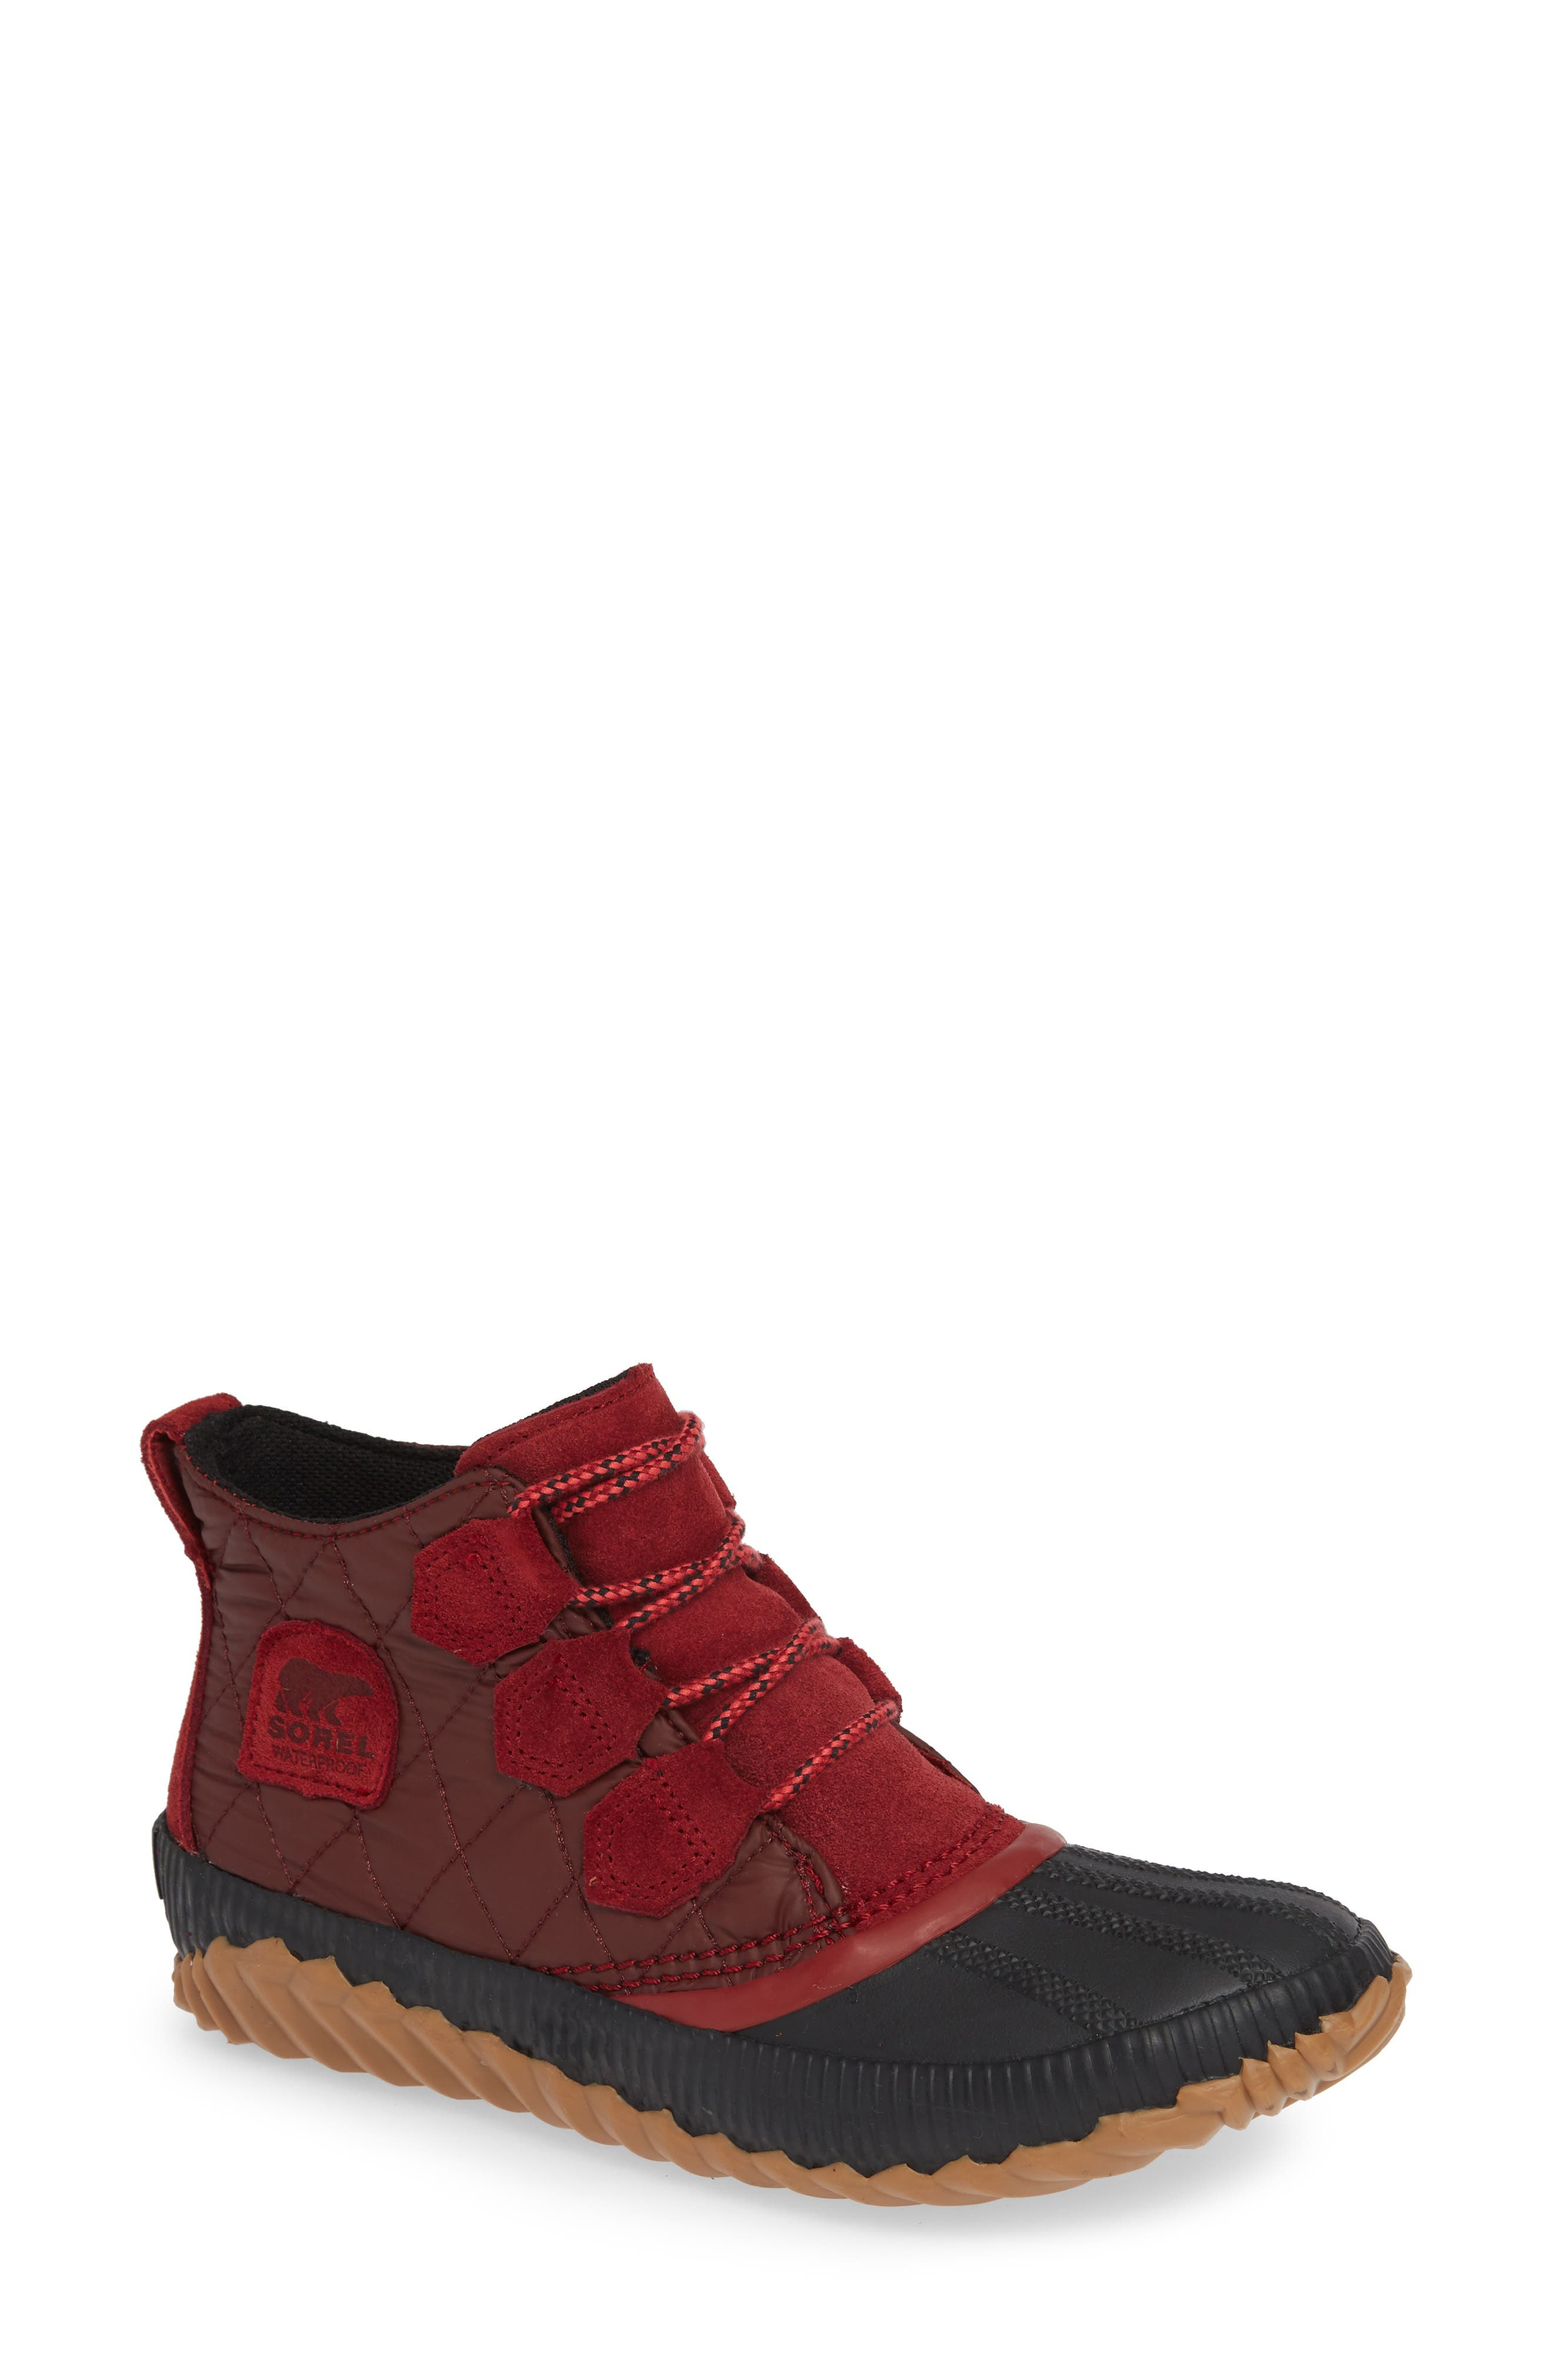 Sorel Out N About Plus Camp Waterproof Bootie, Red